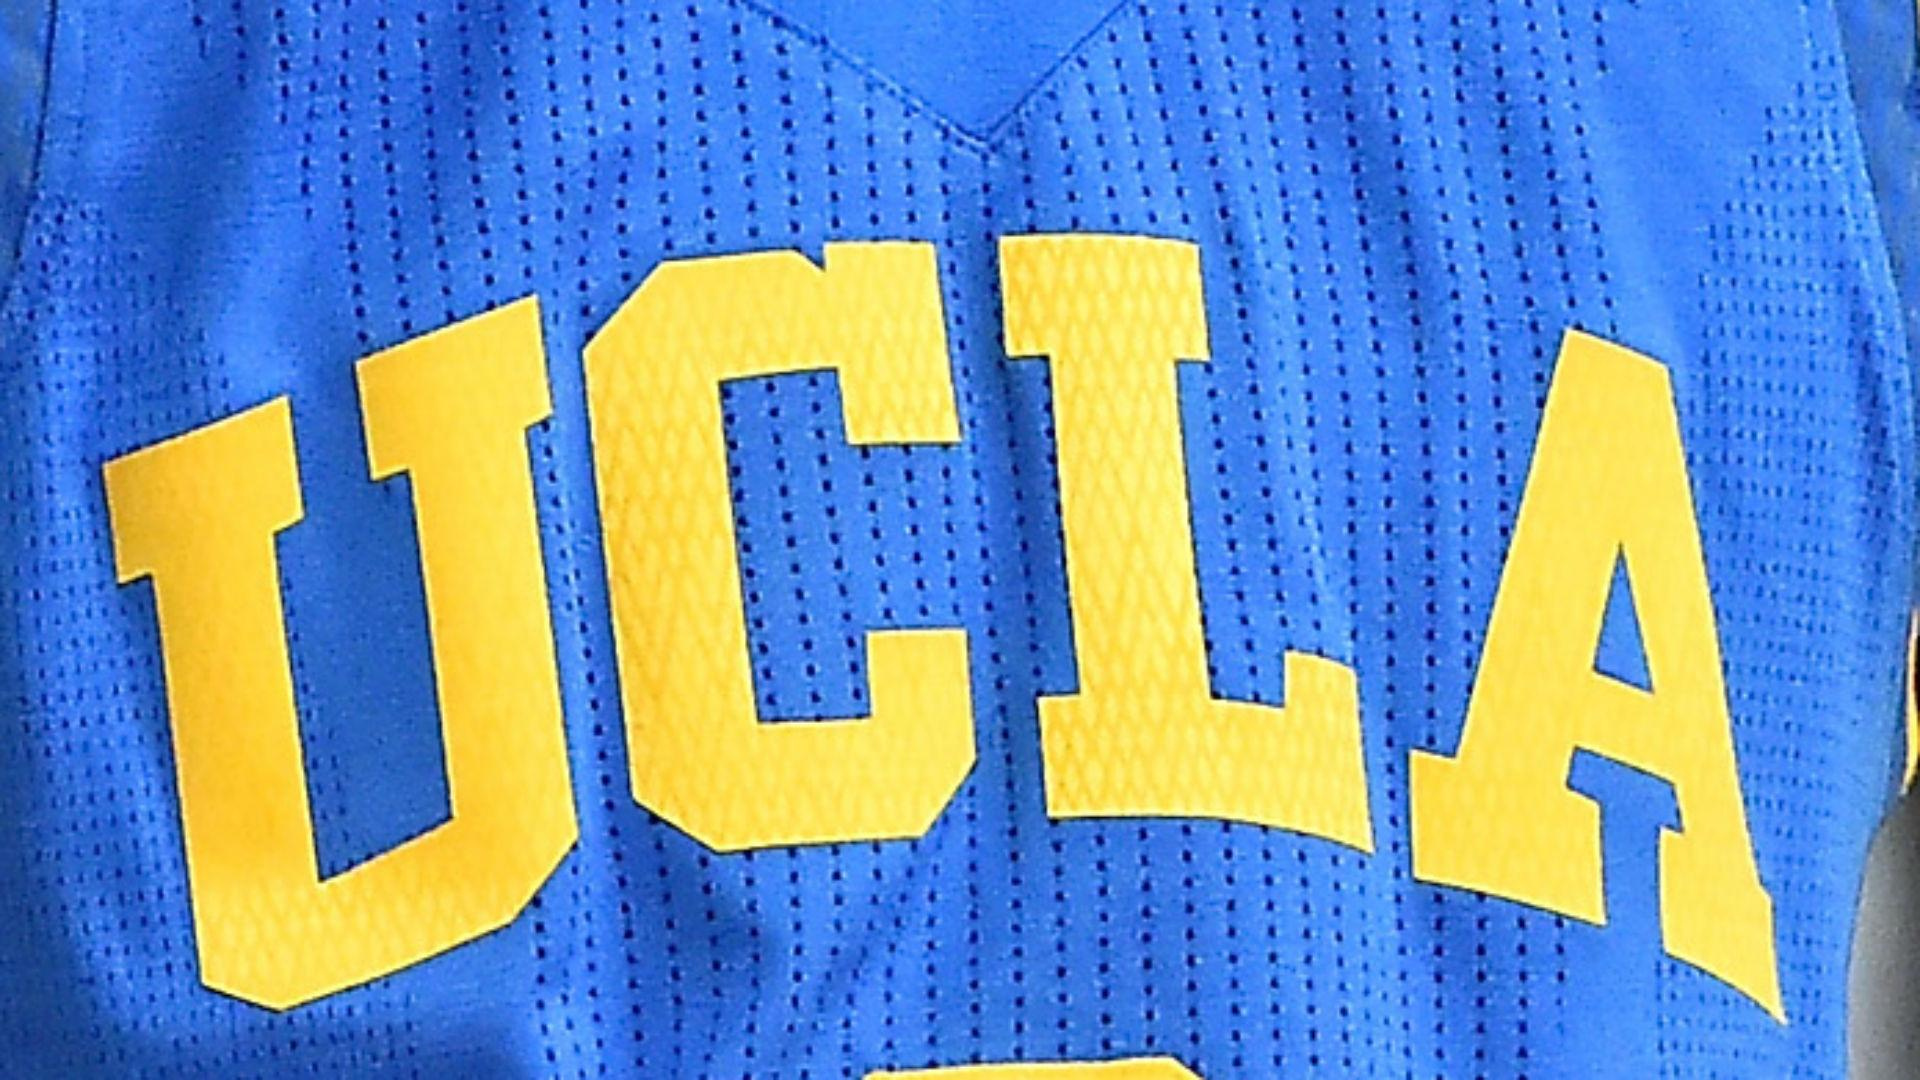 UCLA trio could serve 20 days of house arrest for